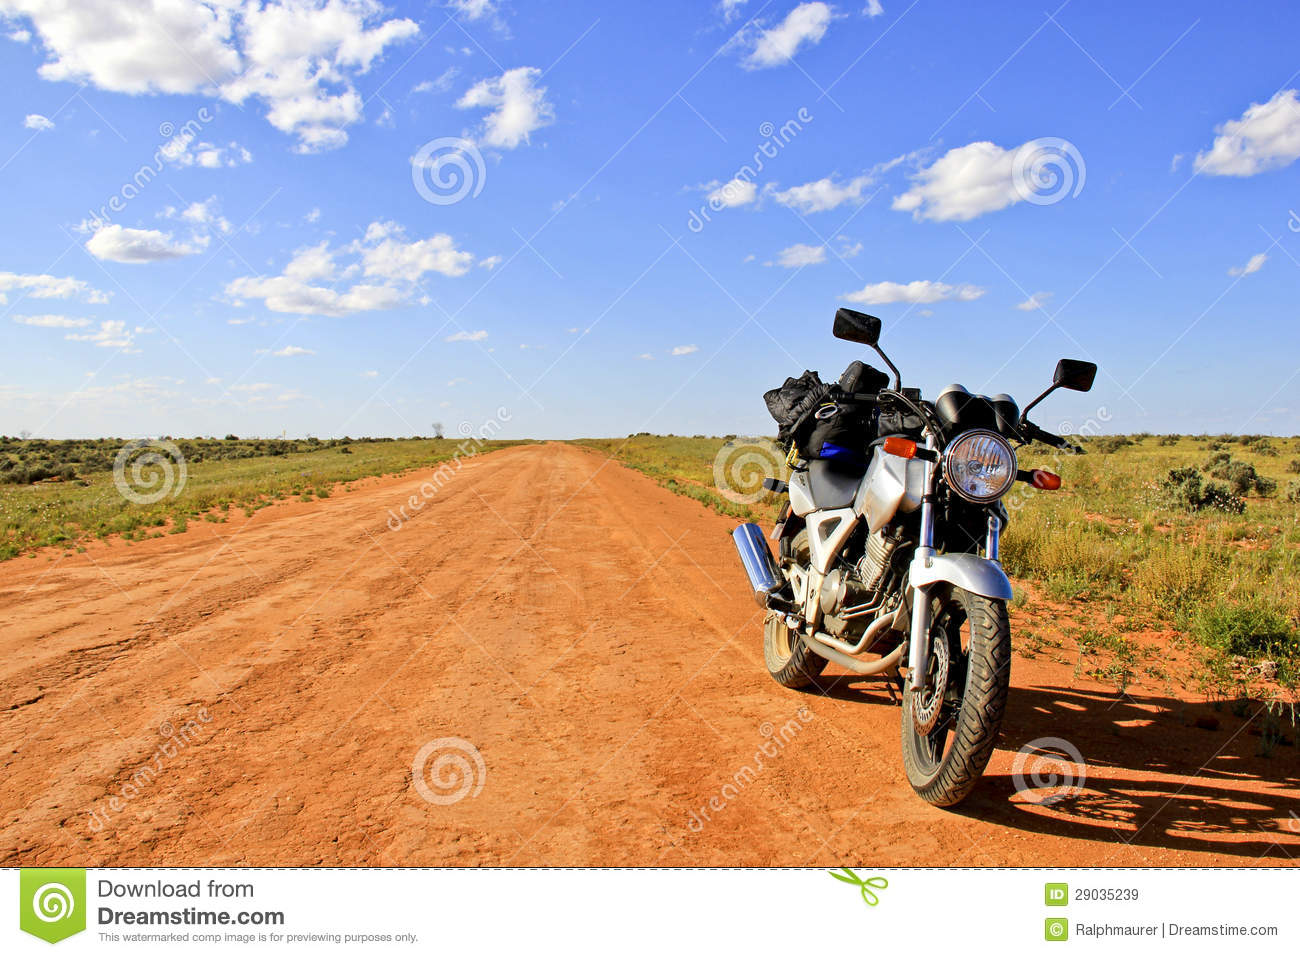 motorcycle on an empty dirt road outback australia royalty